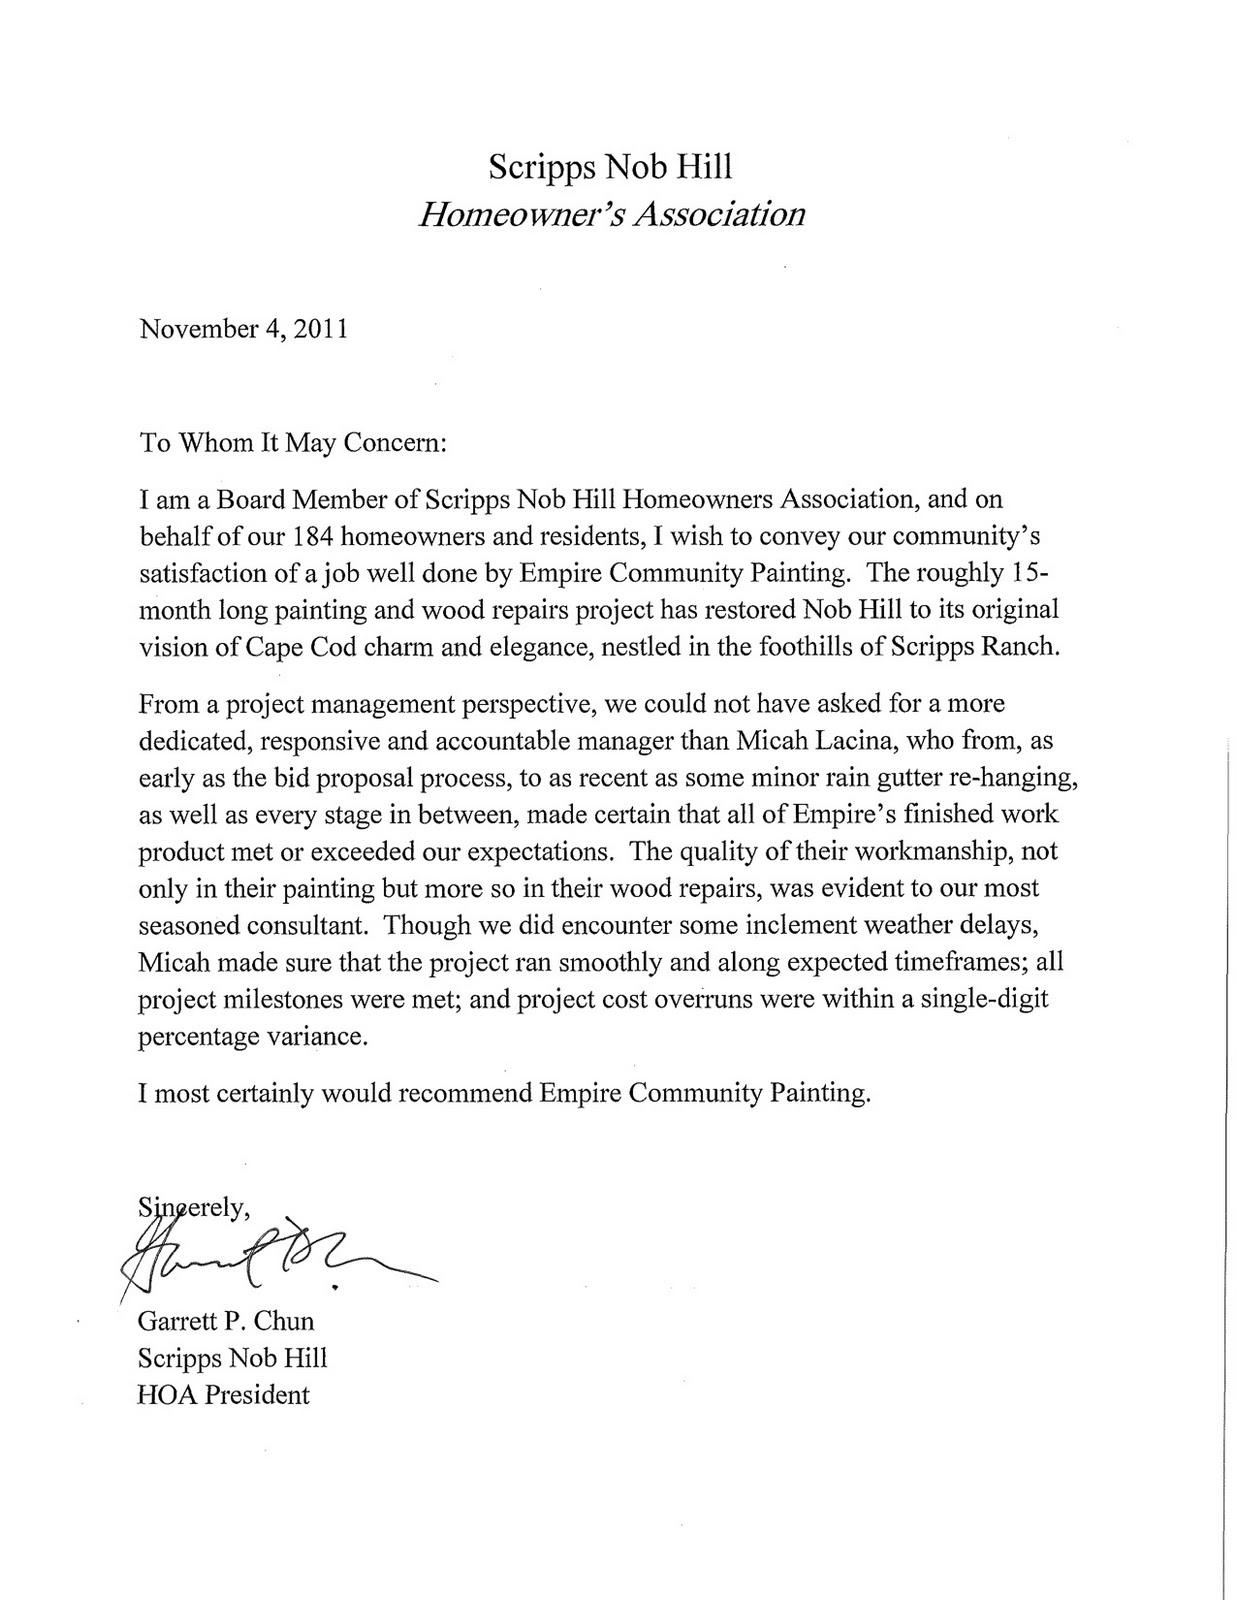 Sample Letter To Homeowners Association Requesting. That Edgewater ...